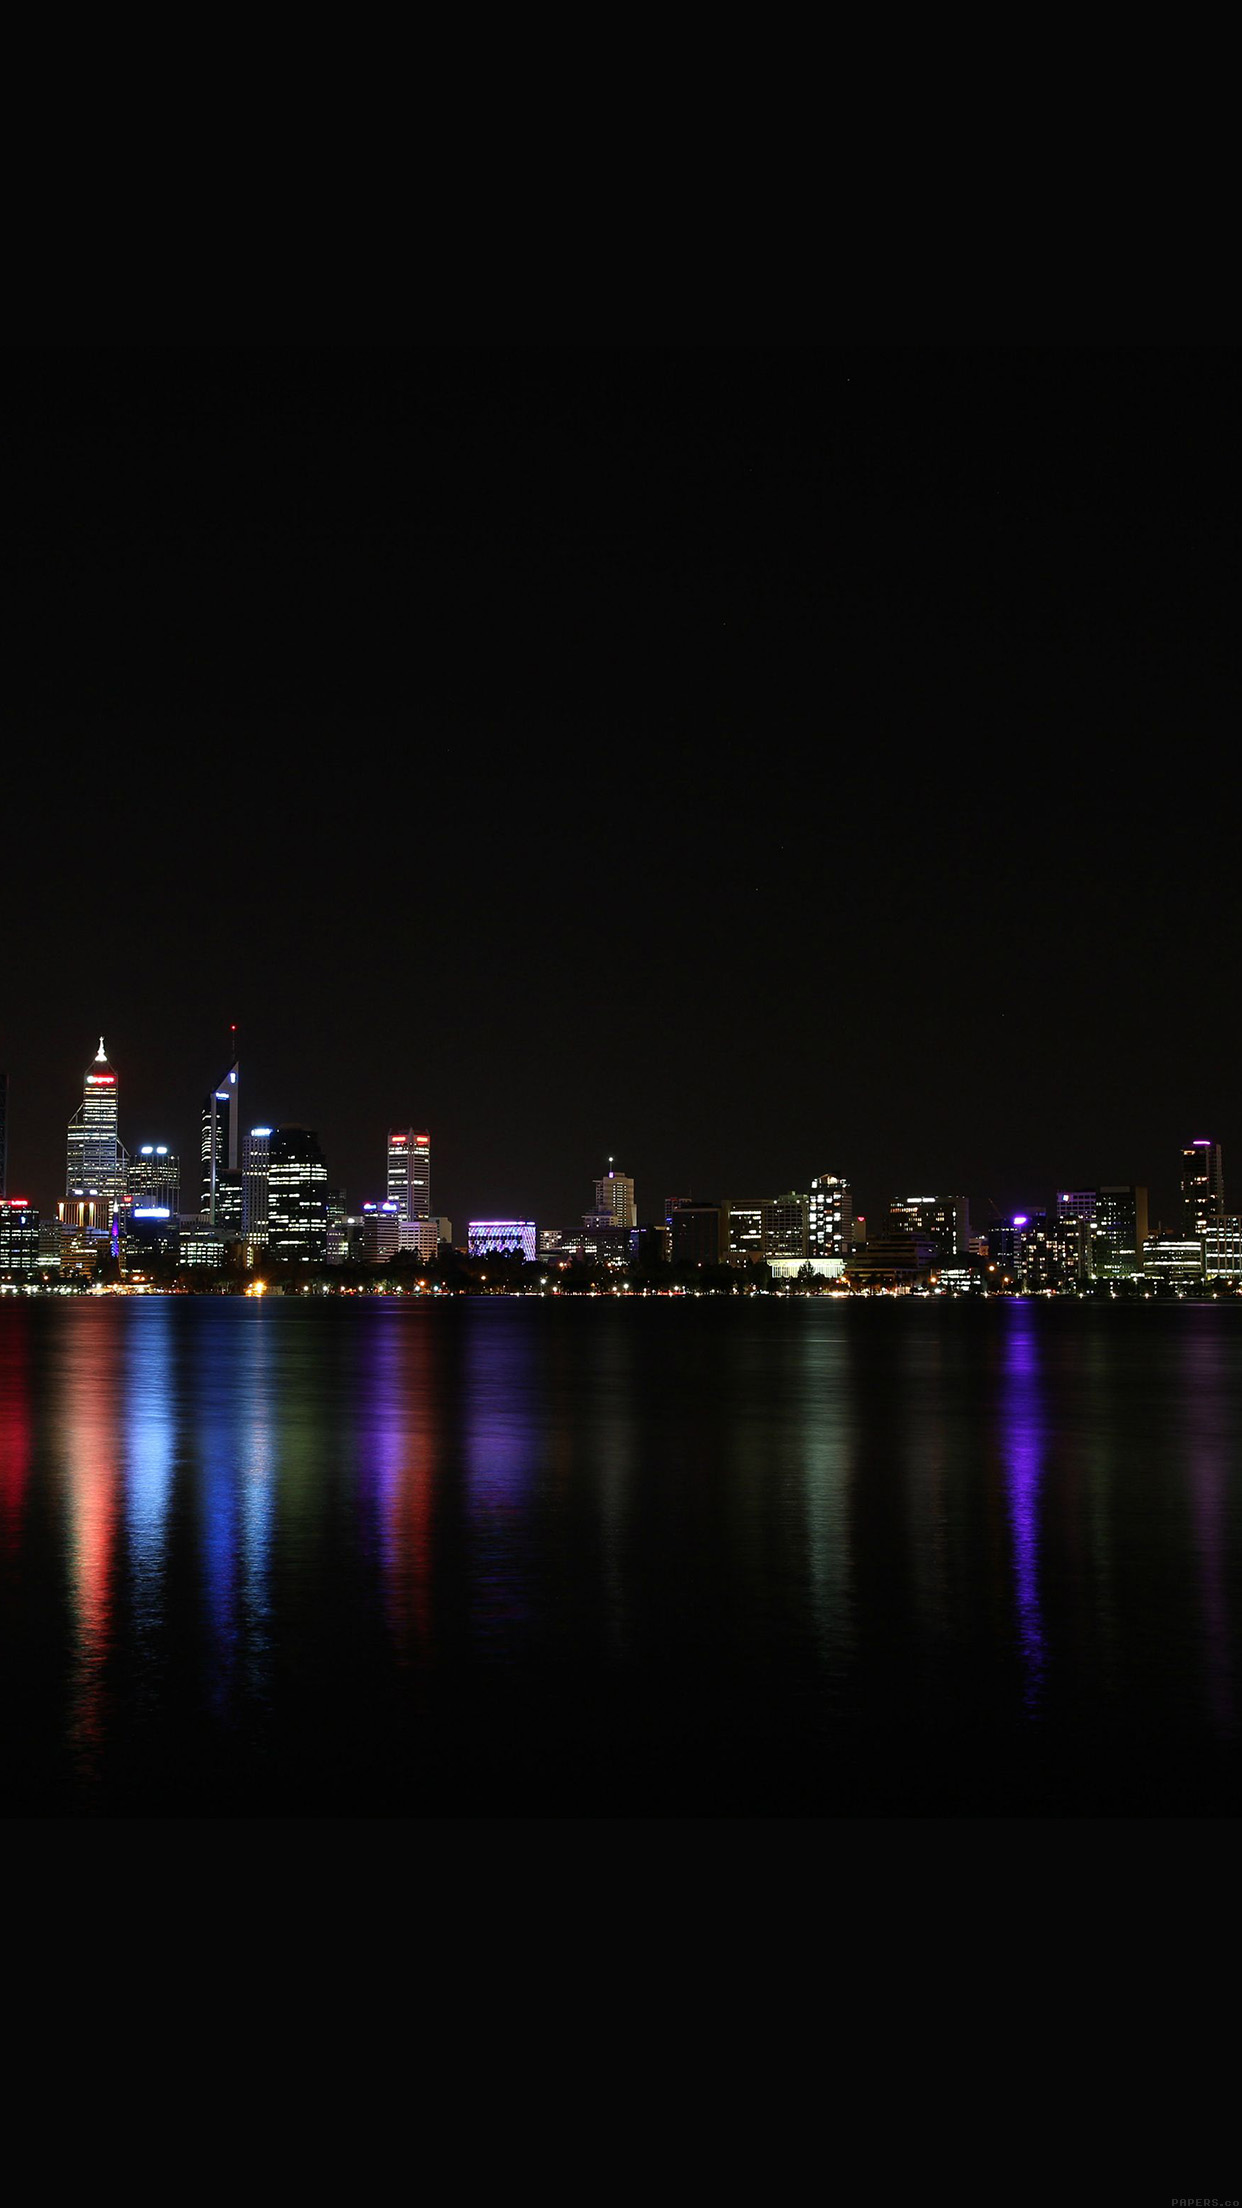 city night skyline architecture river dark android wallpaper